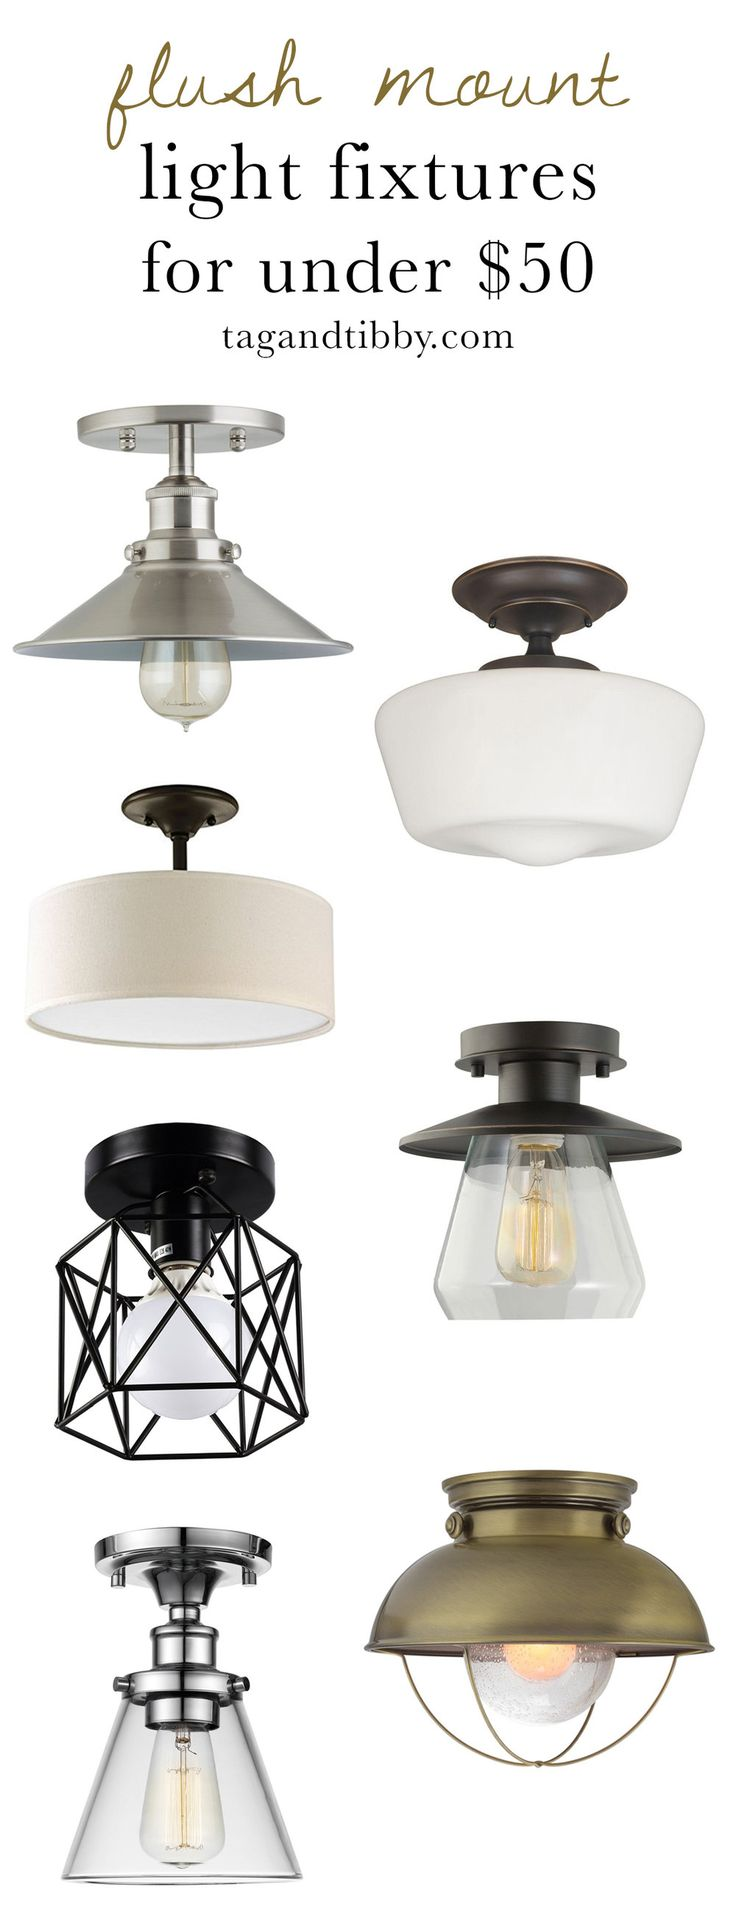 Bathroom Light Fixtures Under $50 best 25+ flush mount lighting ideas on pinterest | flush mount